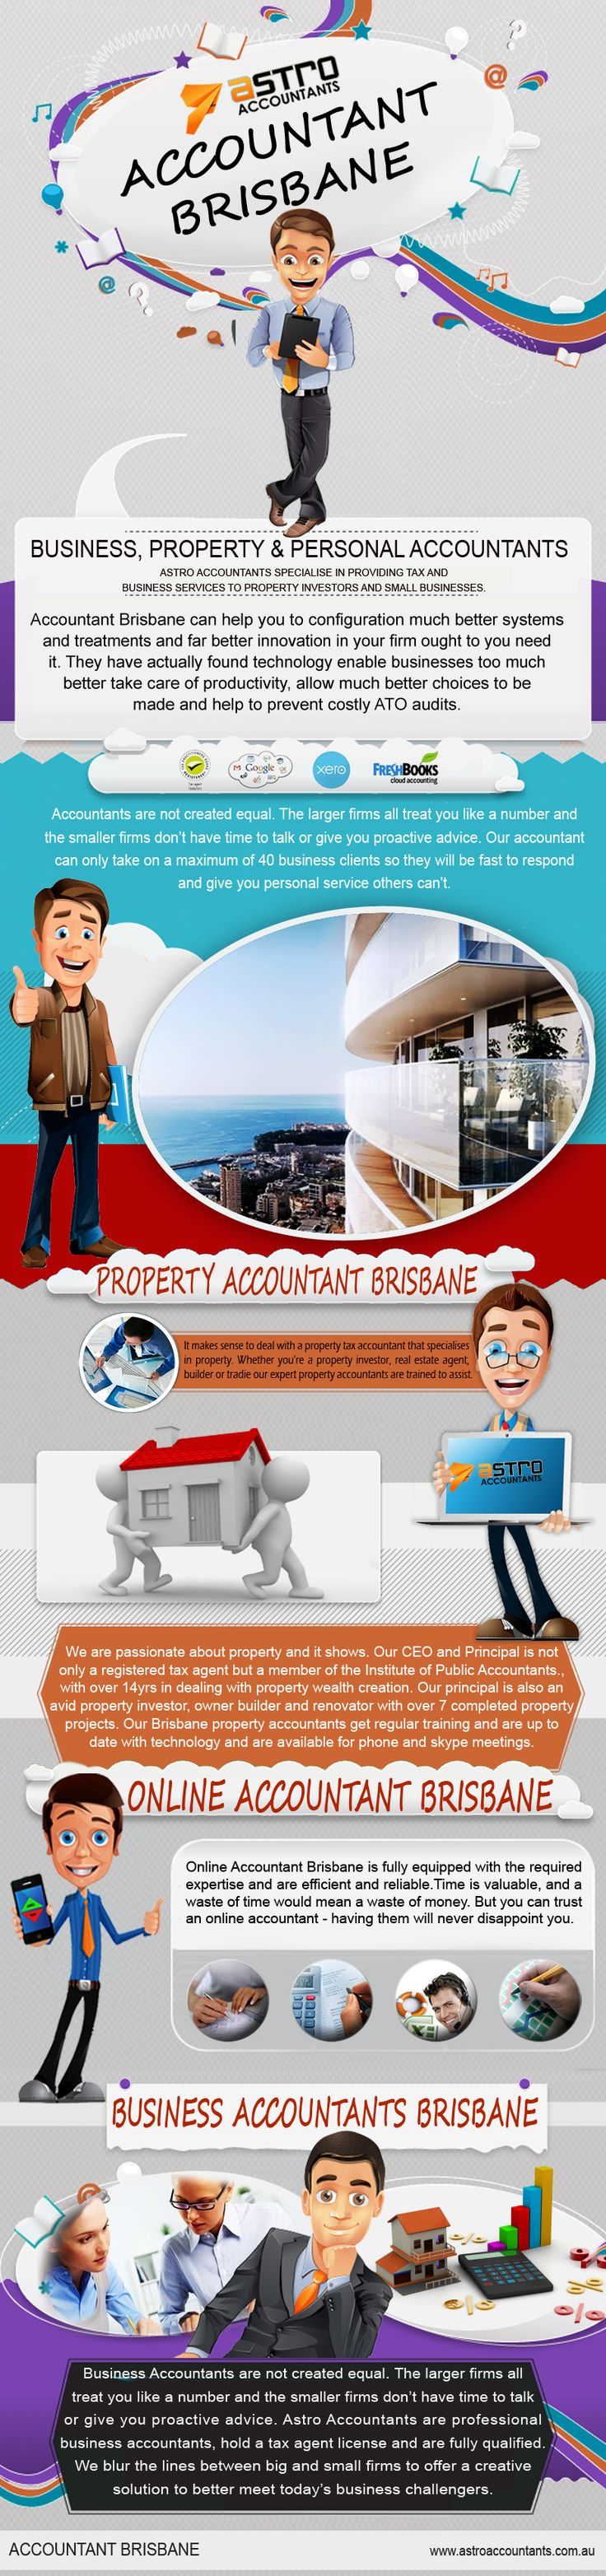 Online Accountant Brisbane is fully equipped with the required expertise and is efficient and reliable. Time is valuable, and a waste of time would mean a waste of money. Check this link right here http://astroaccountants.com.au/accountant-brisbane/ for more information on Online Accountant Brisbane. But you can trust an online accountant - having them will never disappoint you.  Follow us: http://onlineaccountantbrisbane.tumblr.com